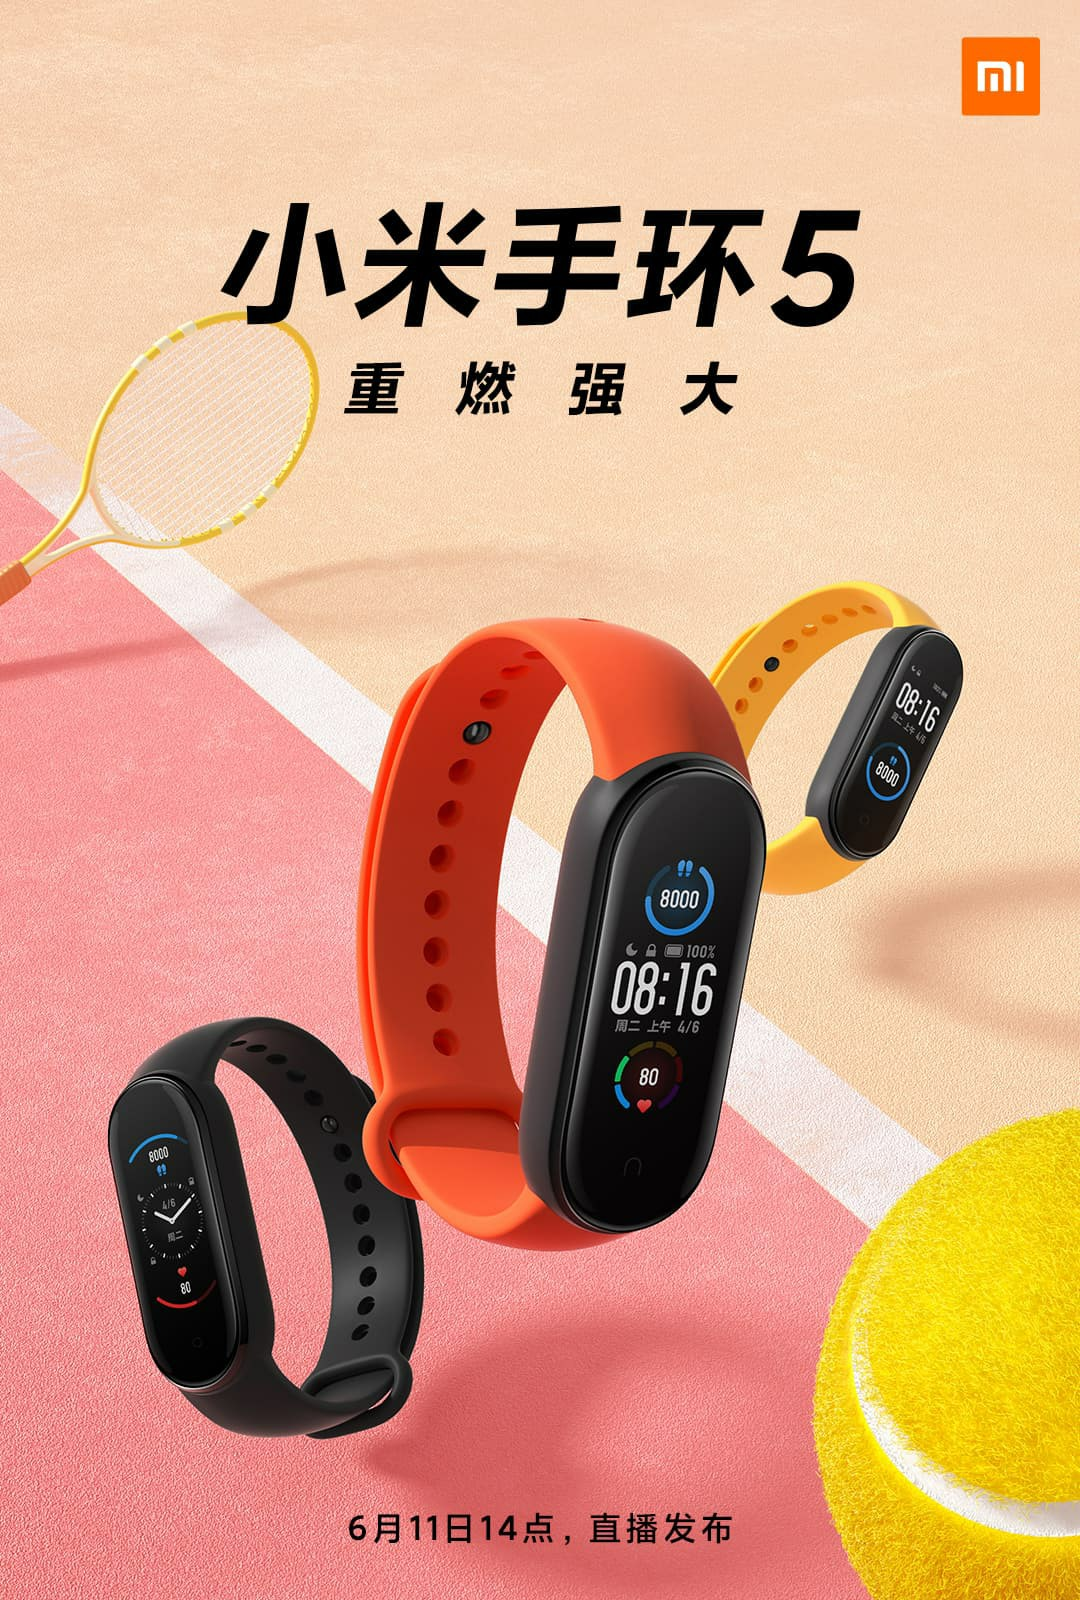 Mi Band 5 Official Posters